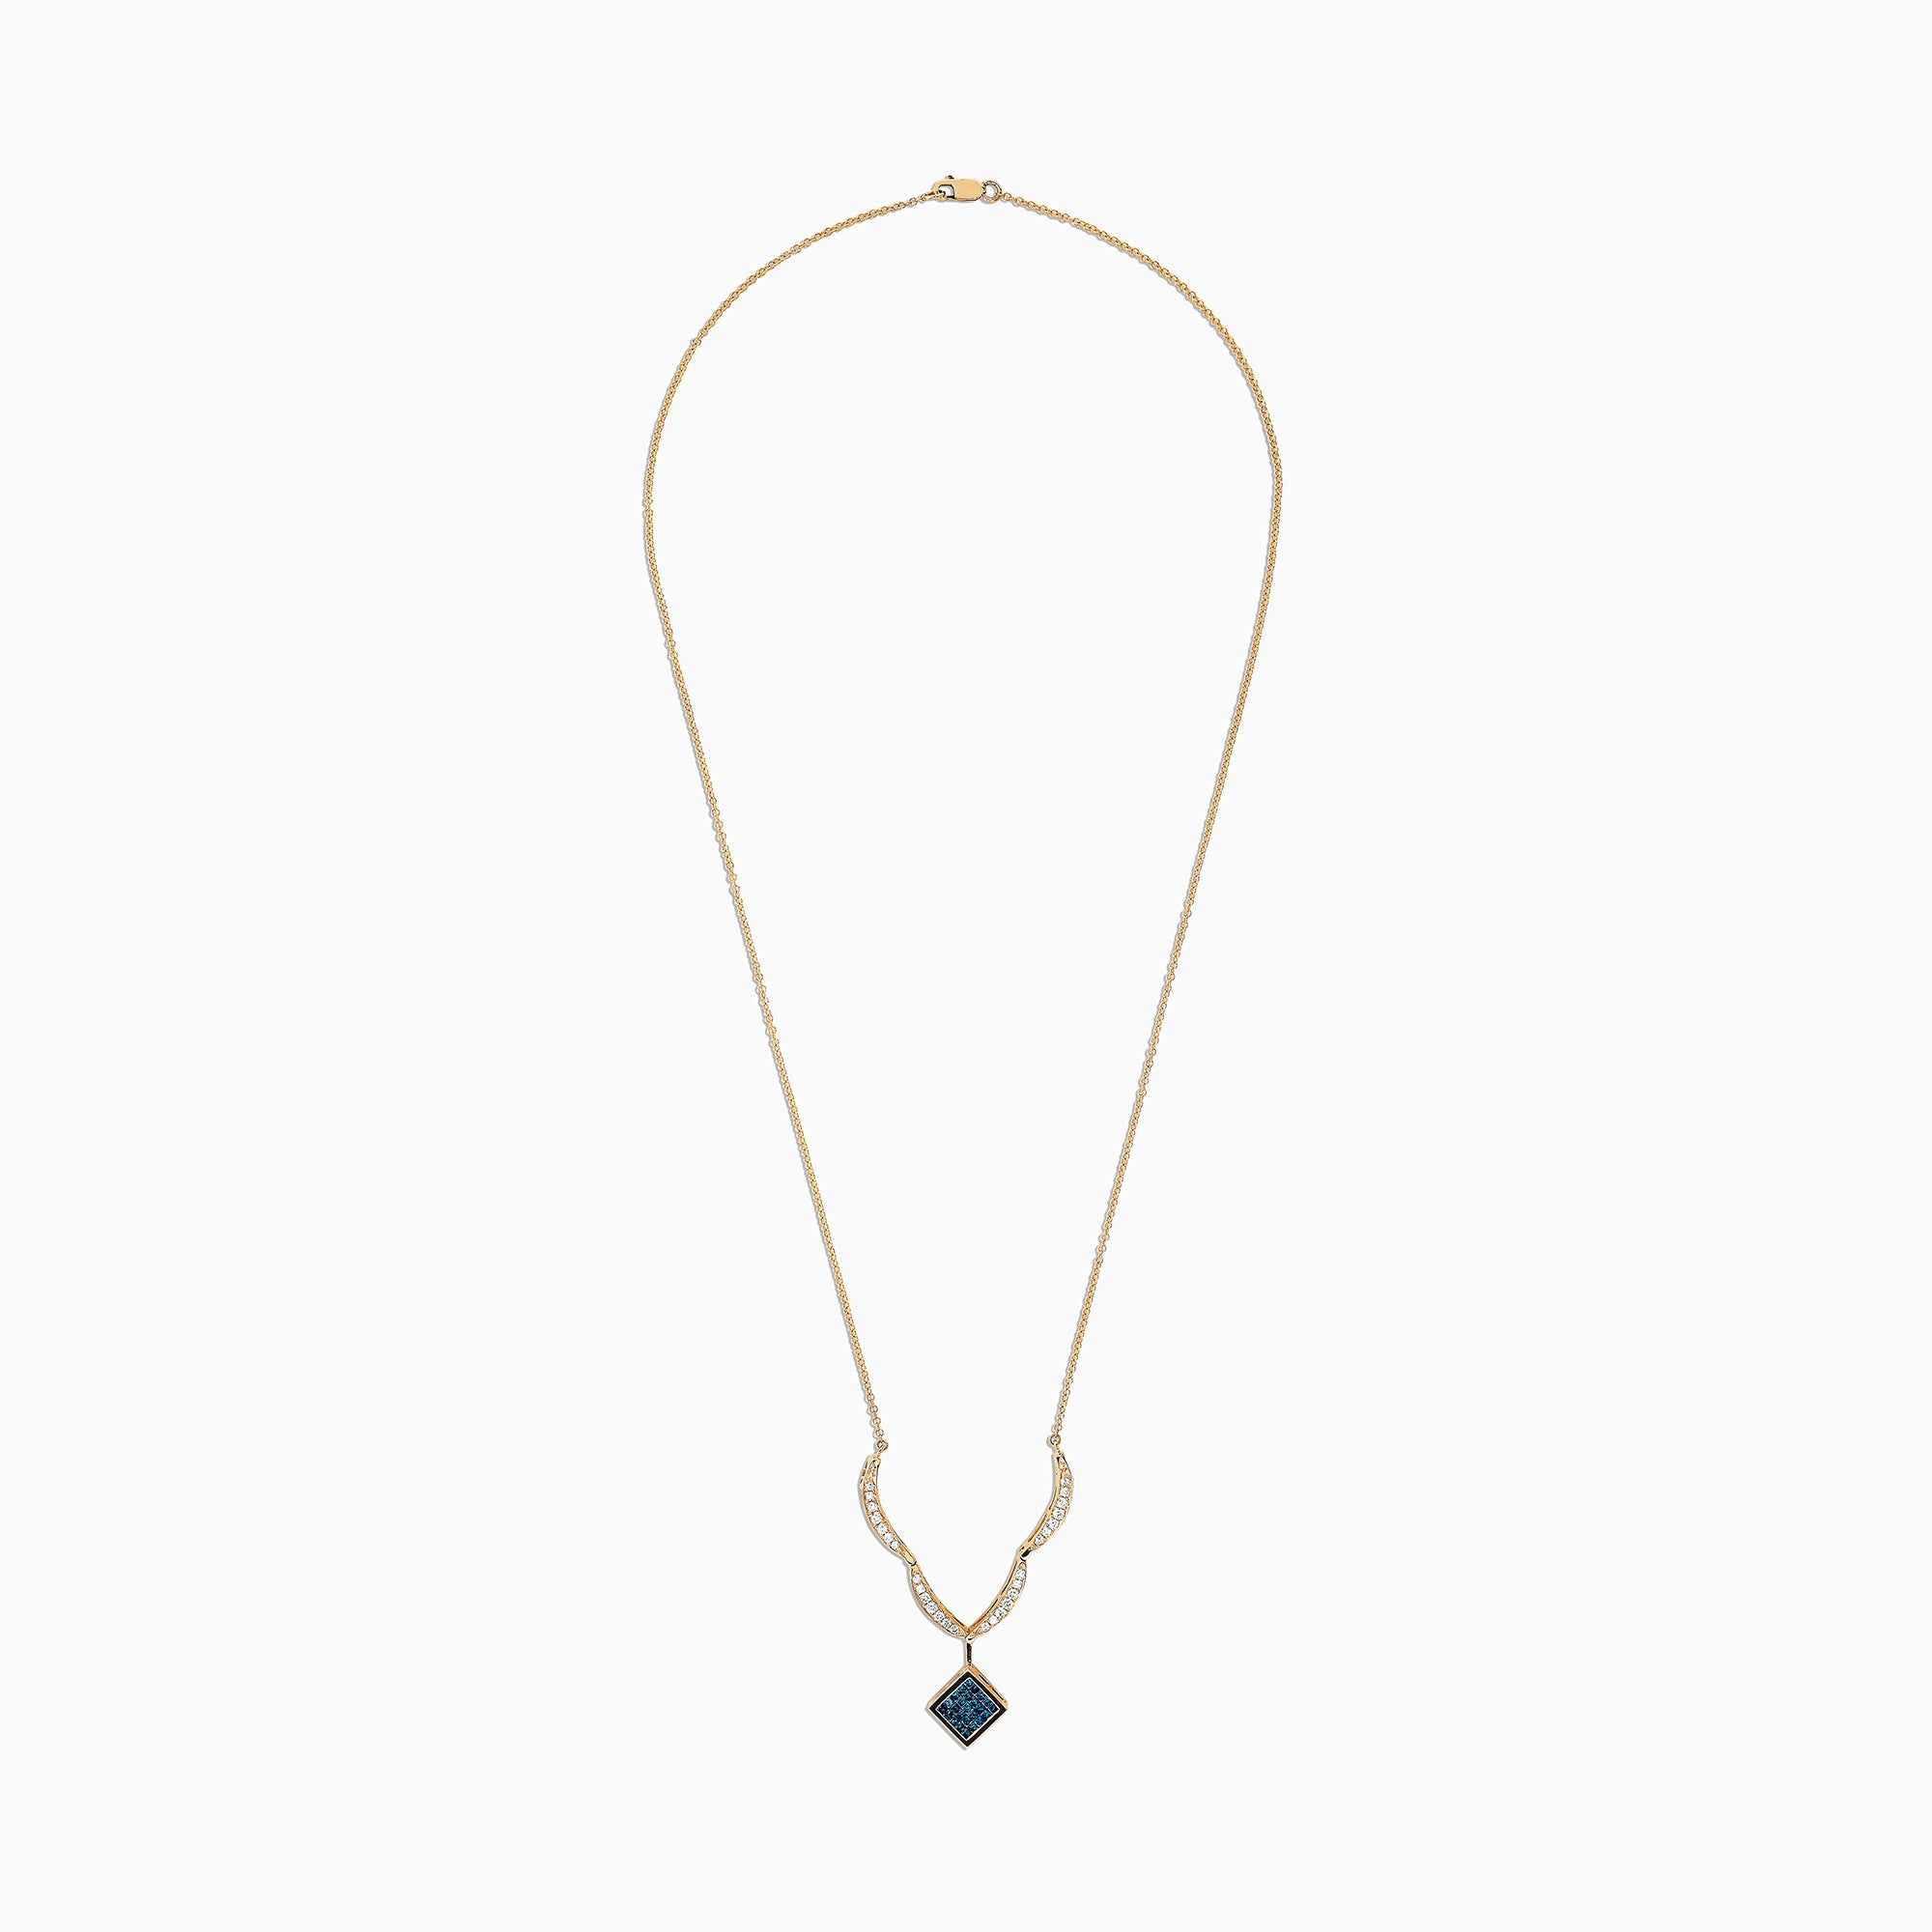 Effy Diversa 14K Yellow Gold Blue and White Diamond Necklace, 1.50 TCW